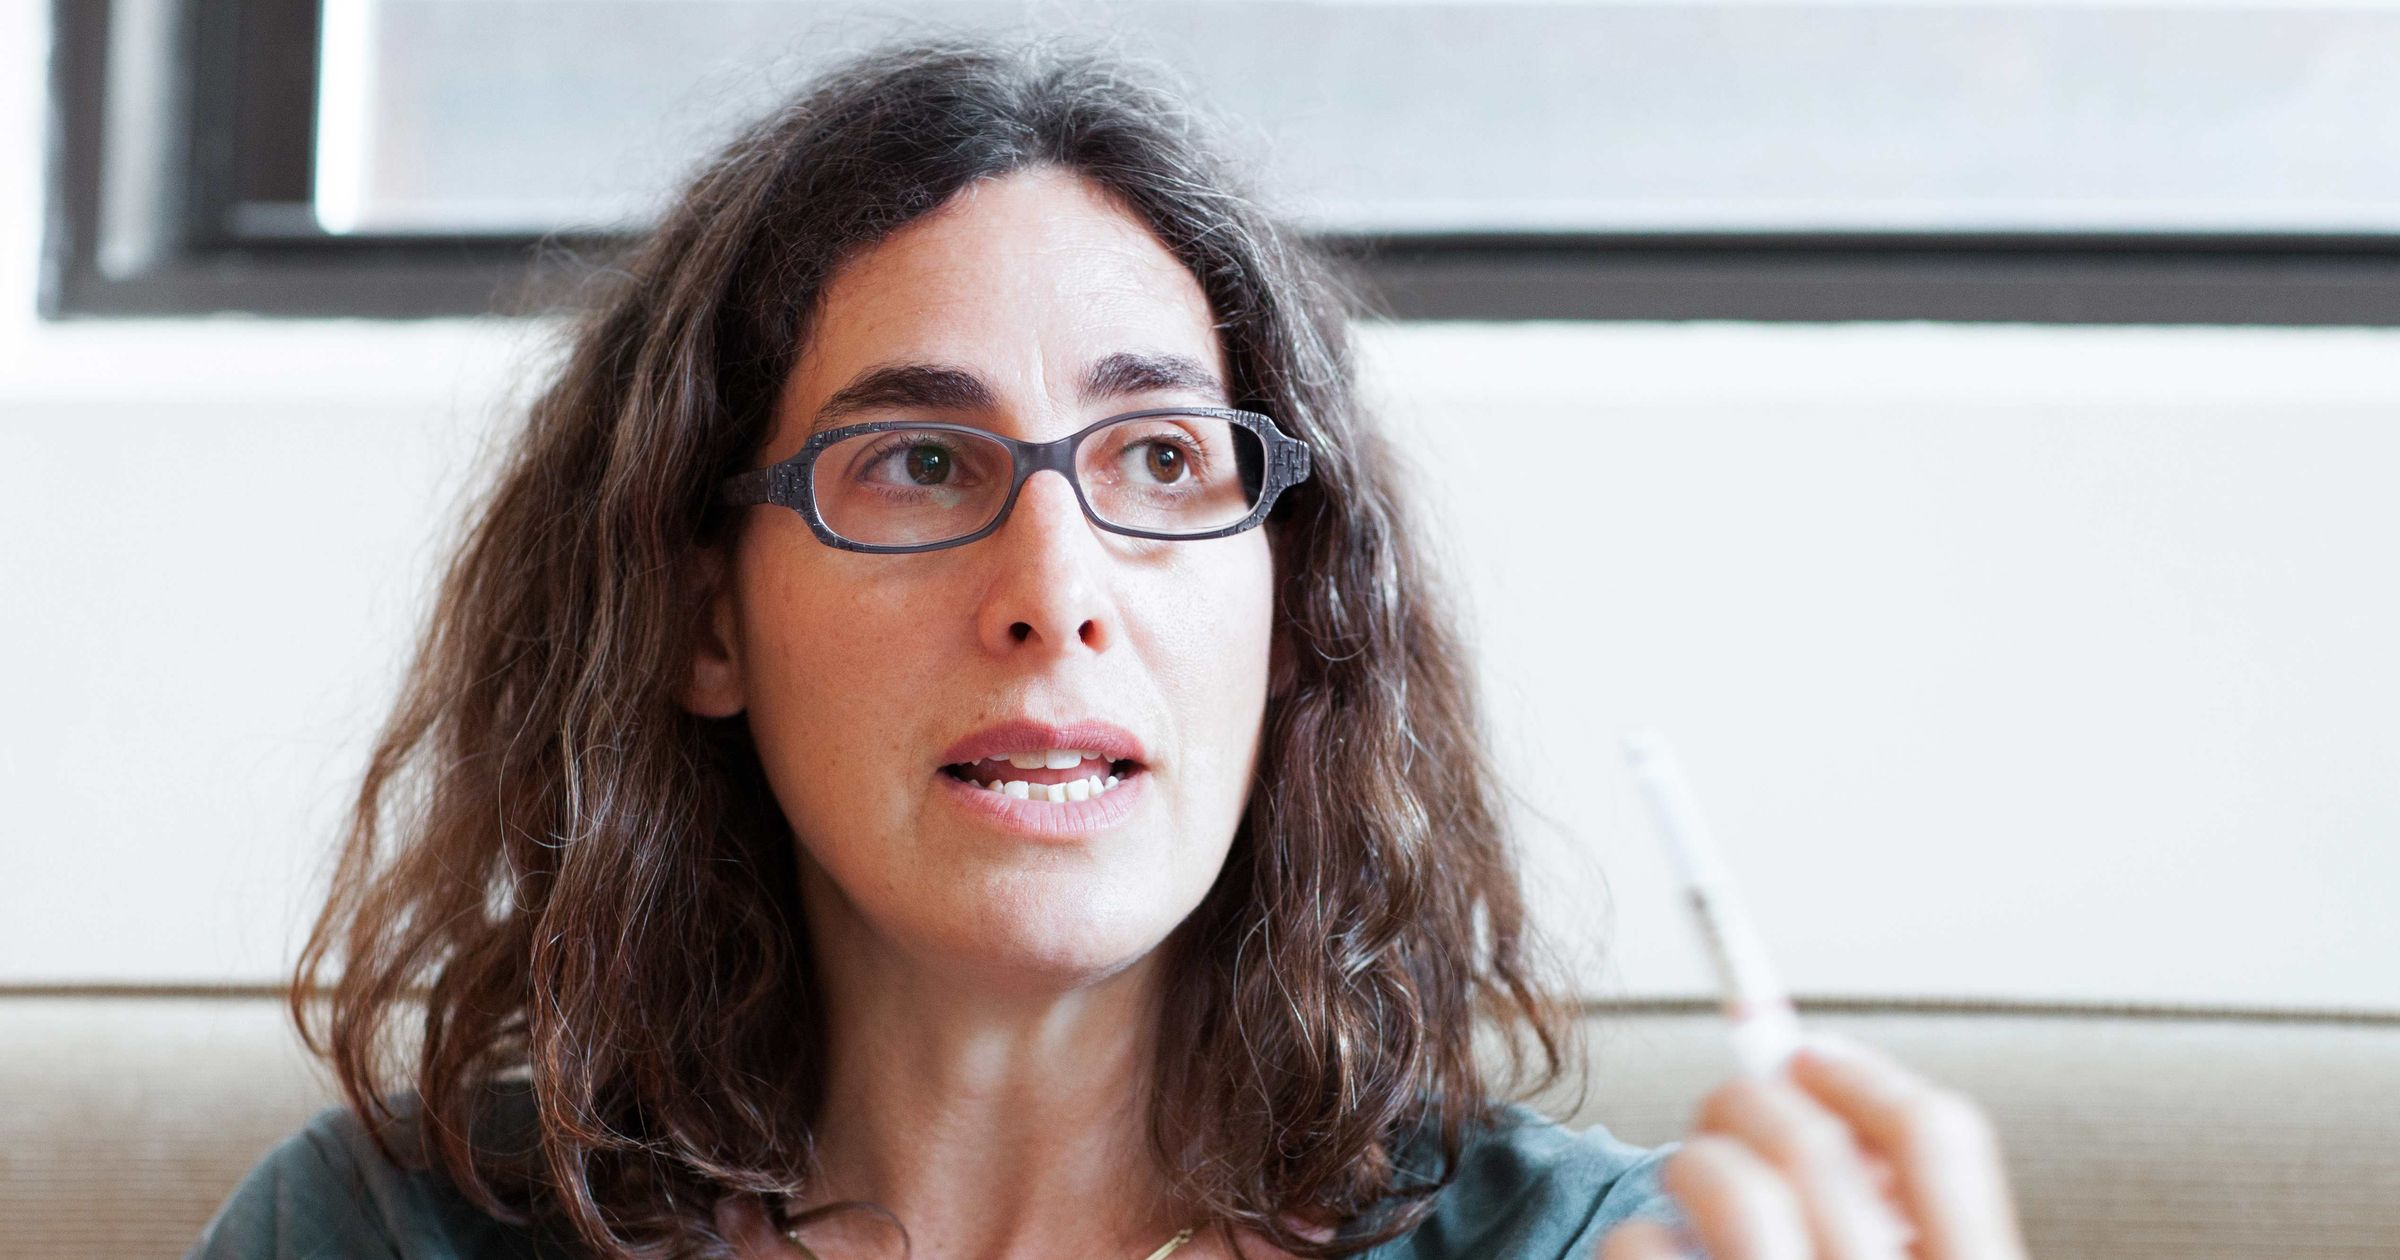 A Psychological Explanation for Why 'Serial' Drives Some People Crazy